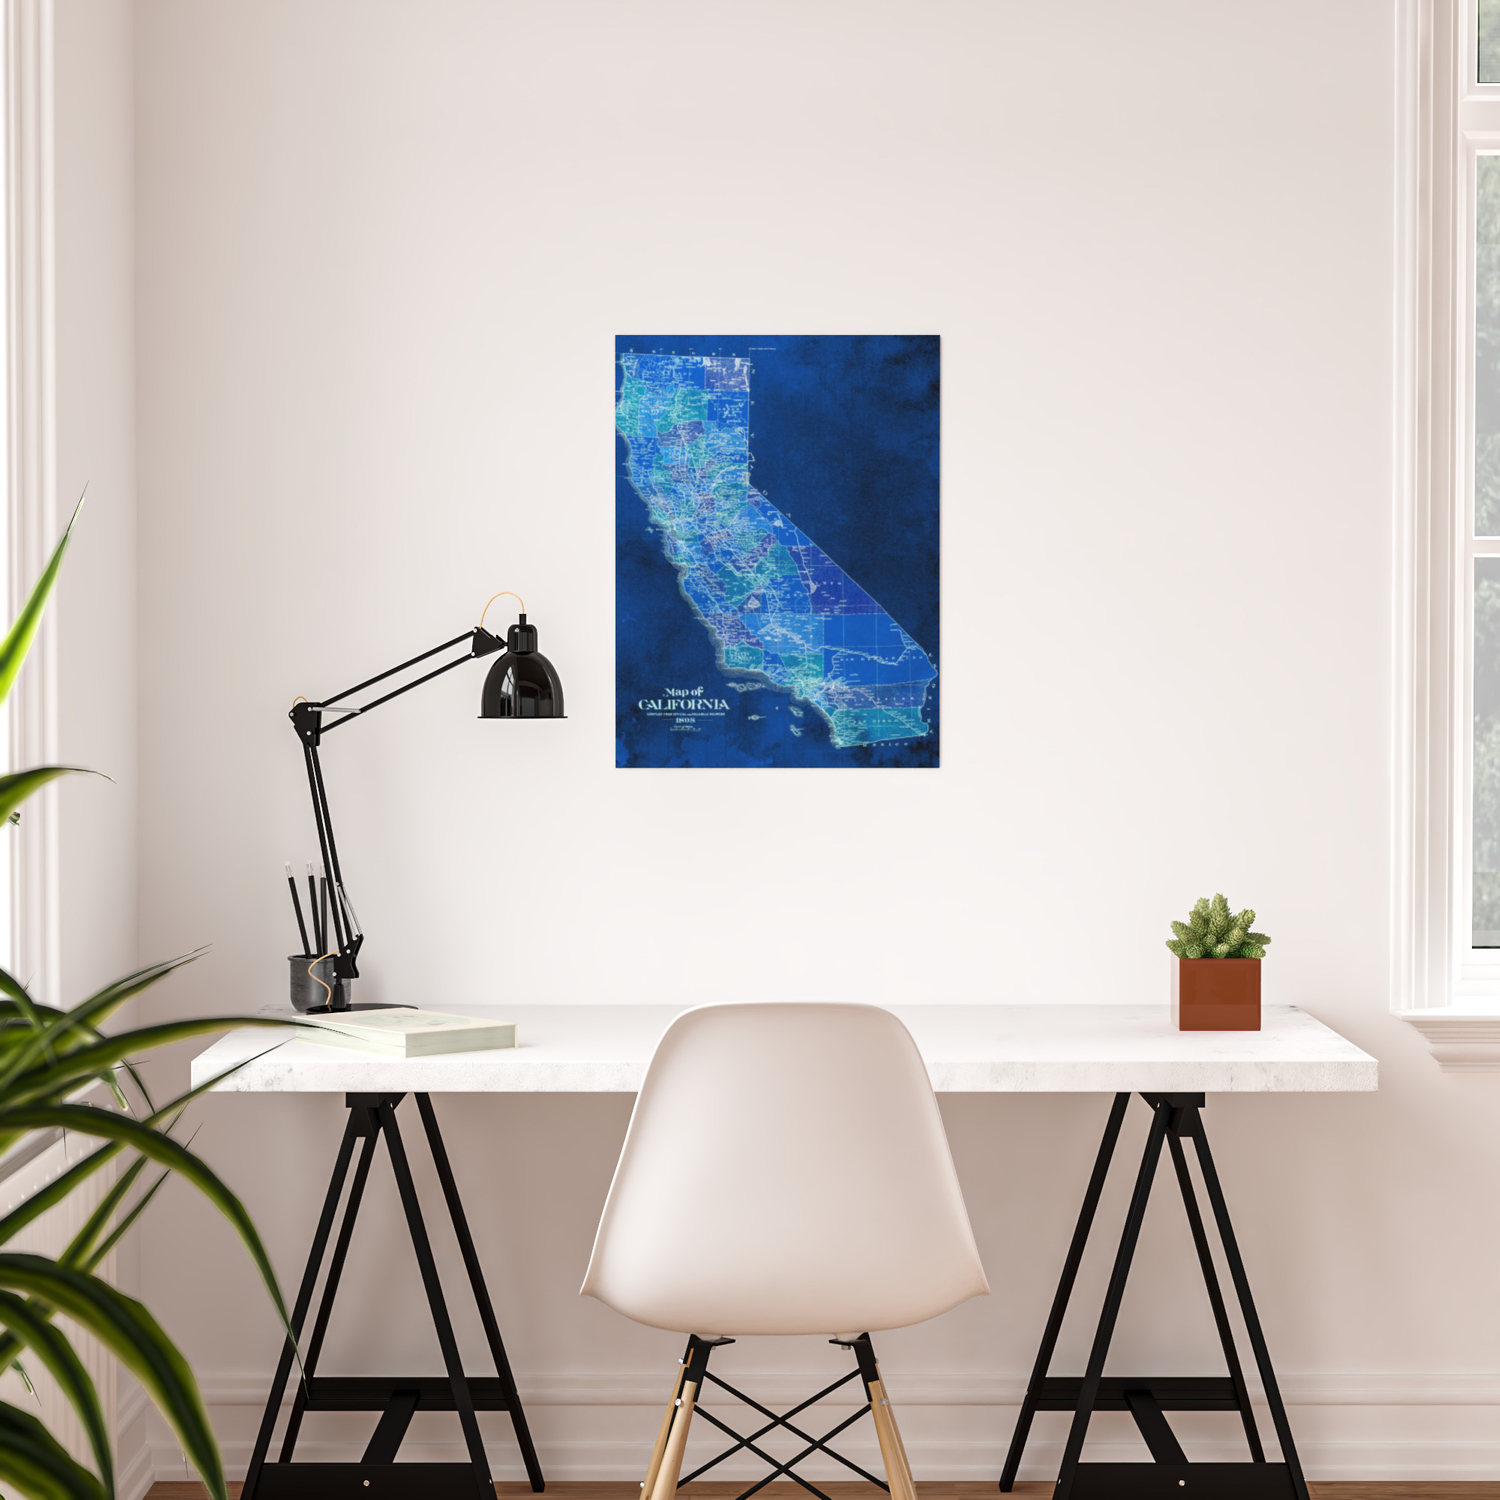 California Blue Old Vintage Map Original Art For Office Decor Poster By Routes